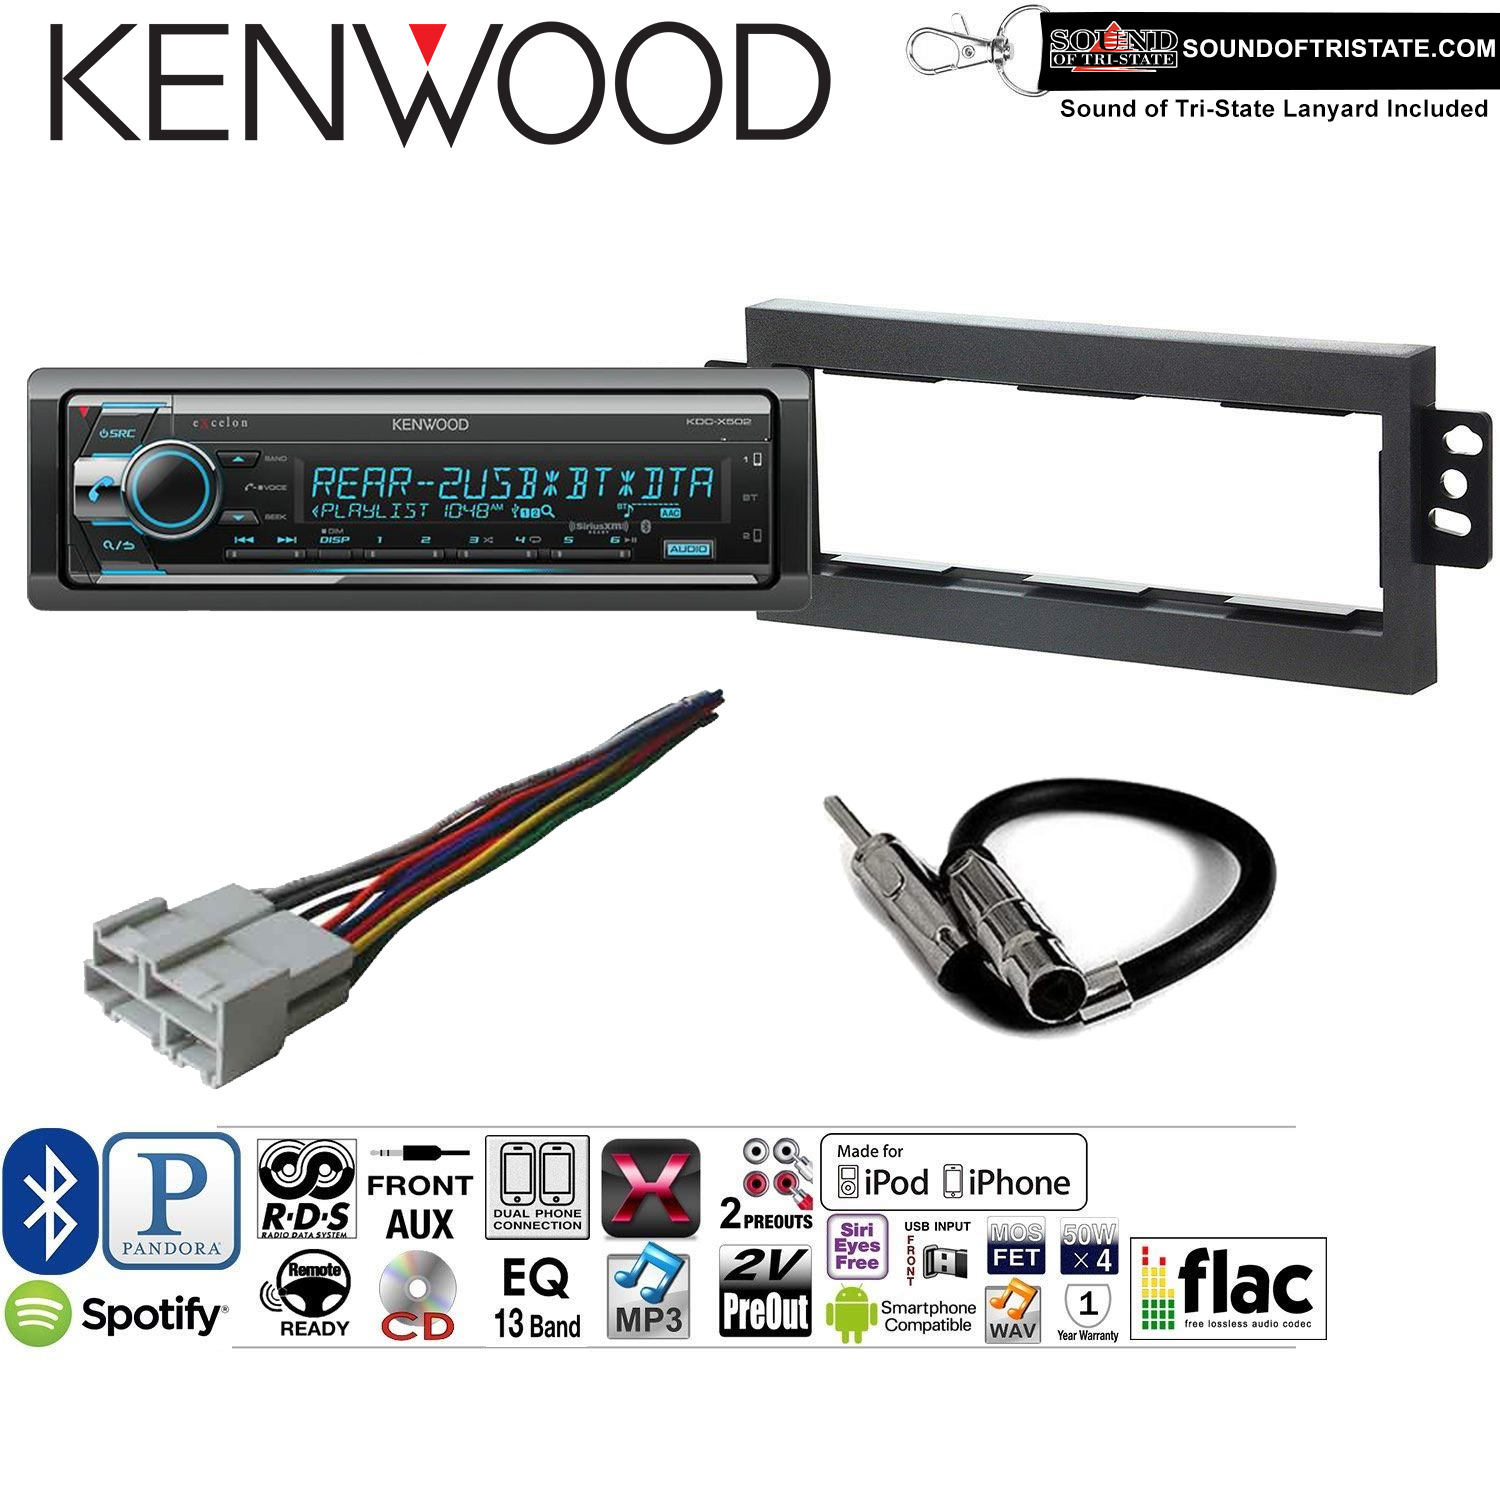 Kenwood KDCX502 Double Din Radio Install Kit with Bluetooth, CD Player, USB/AUX Fits 1994-1996 Chevrolet Impala, 1997-2000 Chevrolet Malibu and a SOTS lanyard included